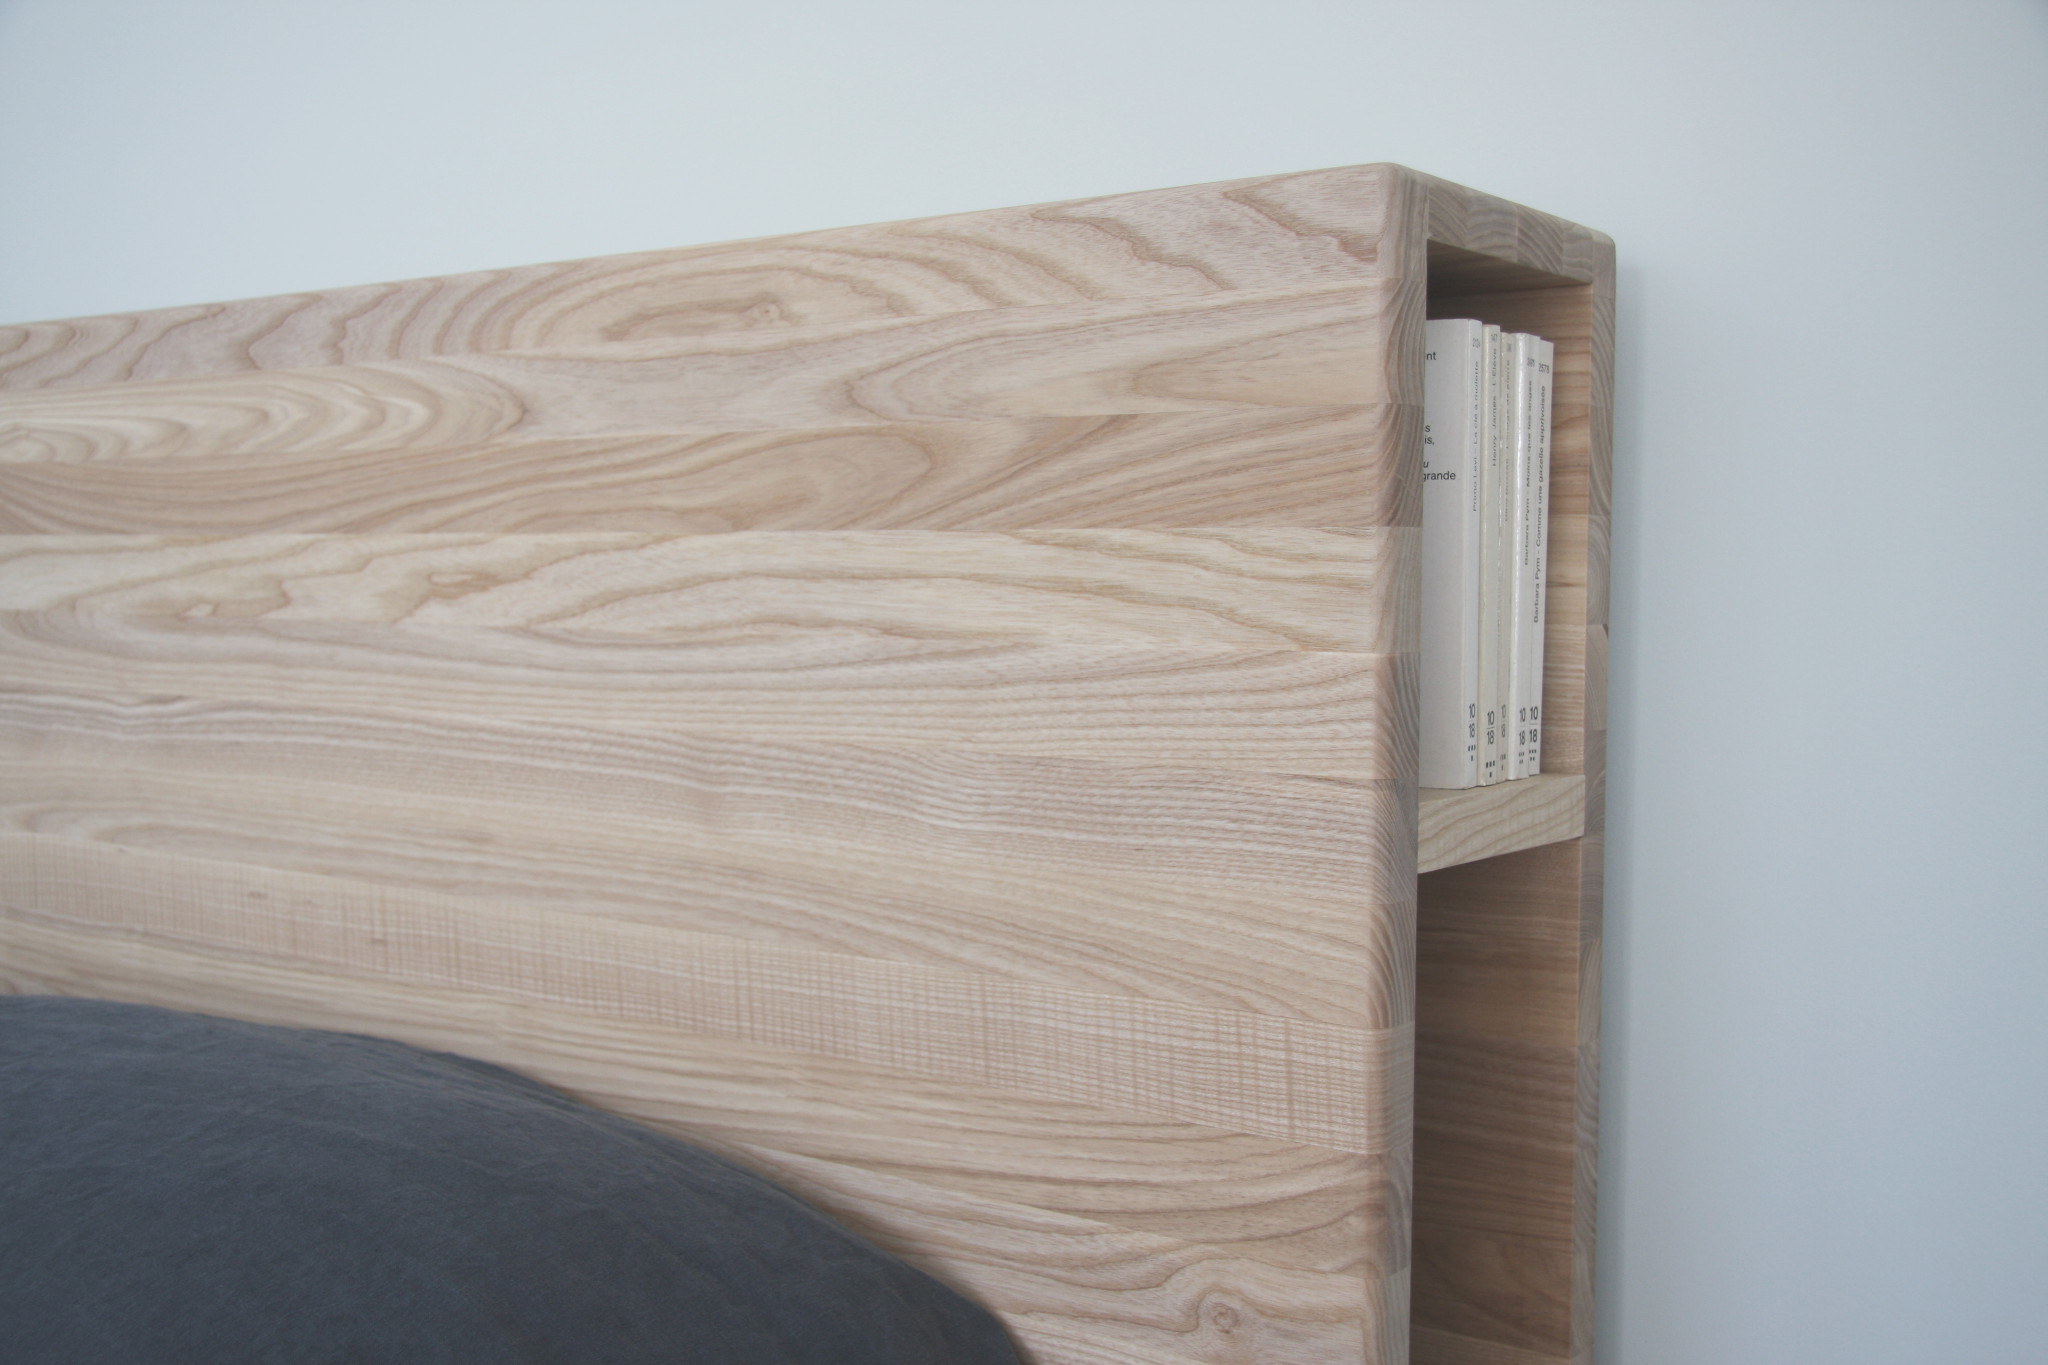 Nonjetable-Solid-Ash-Headboard-Made-to-Measure-01